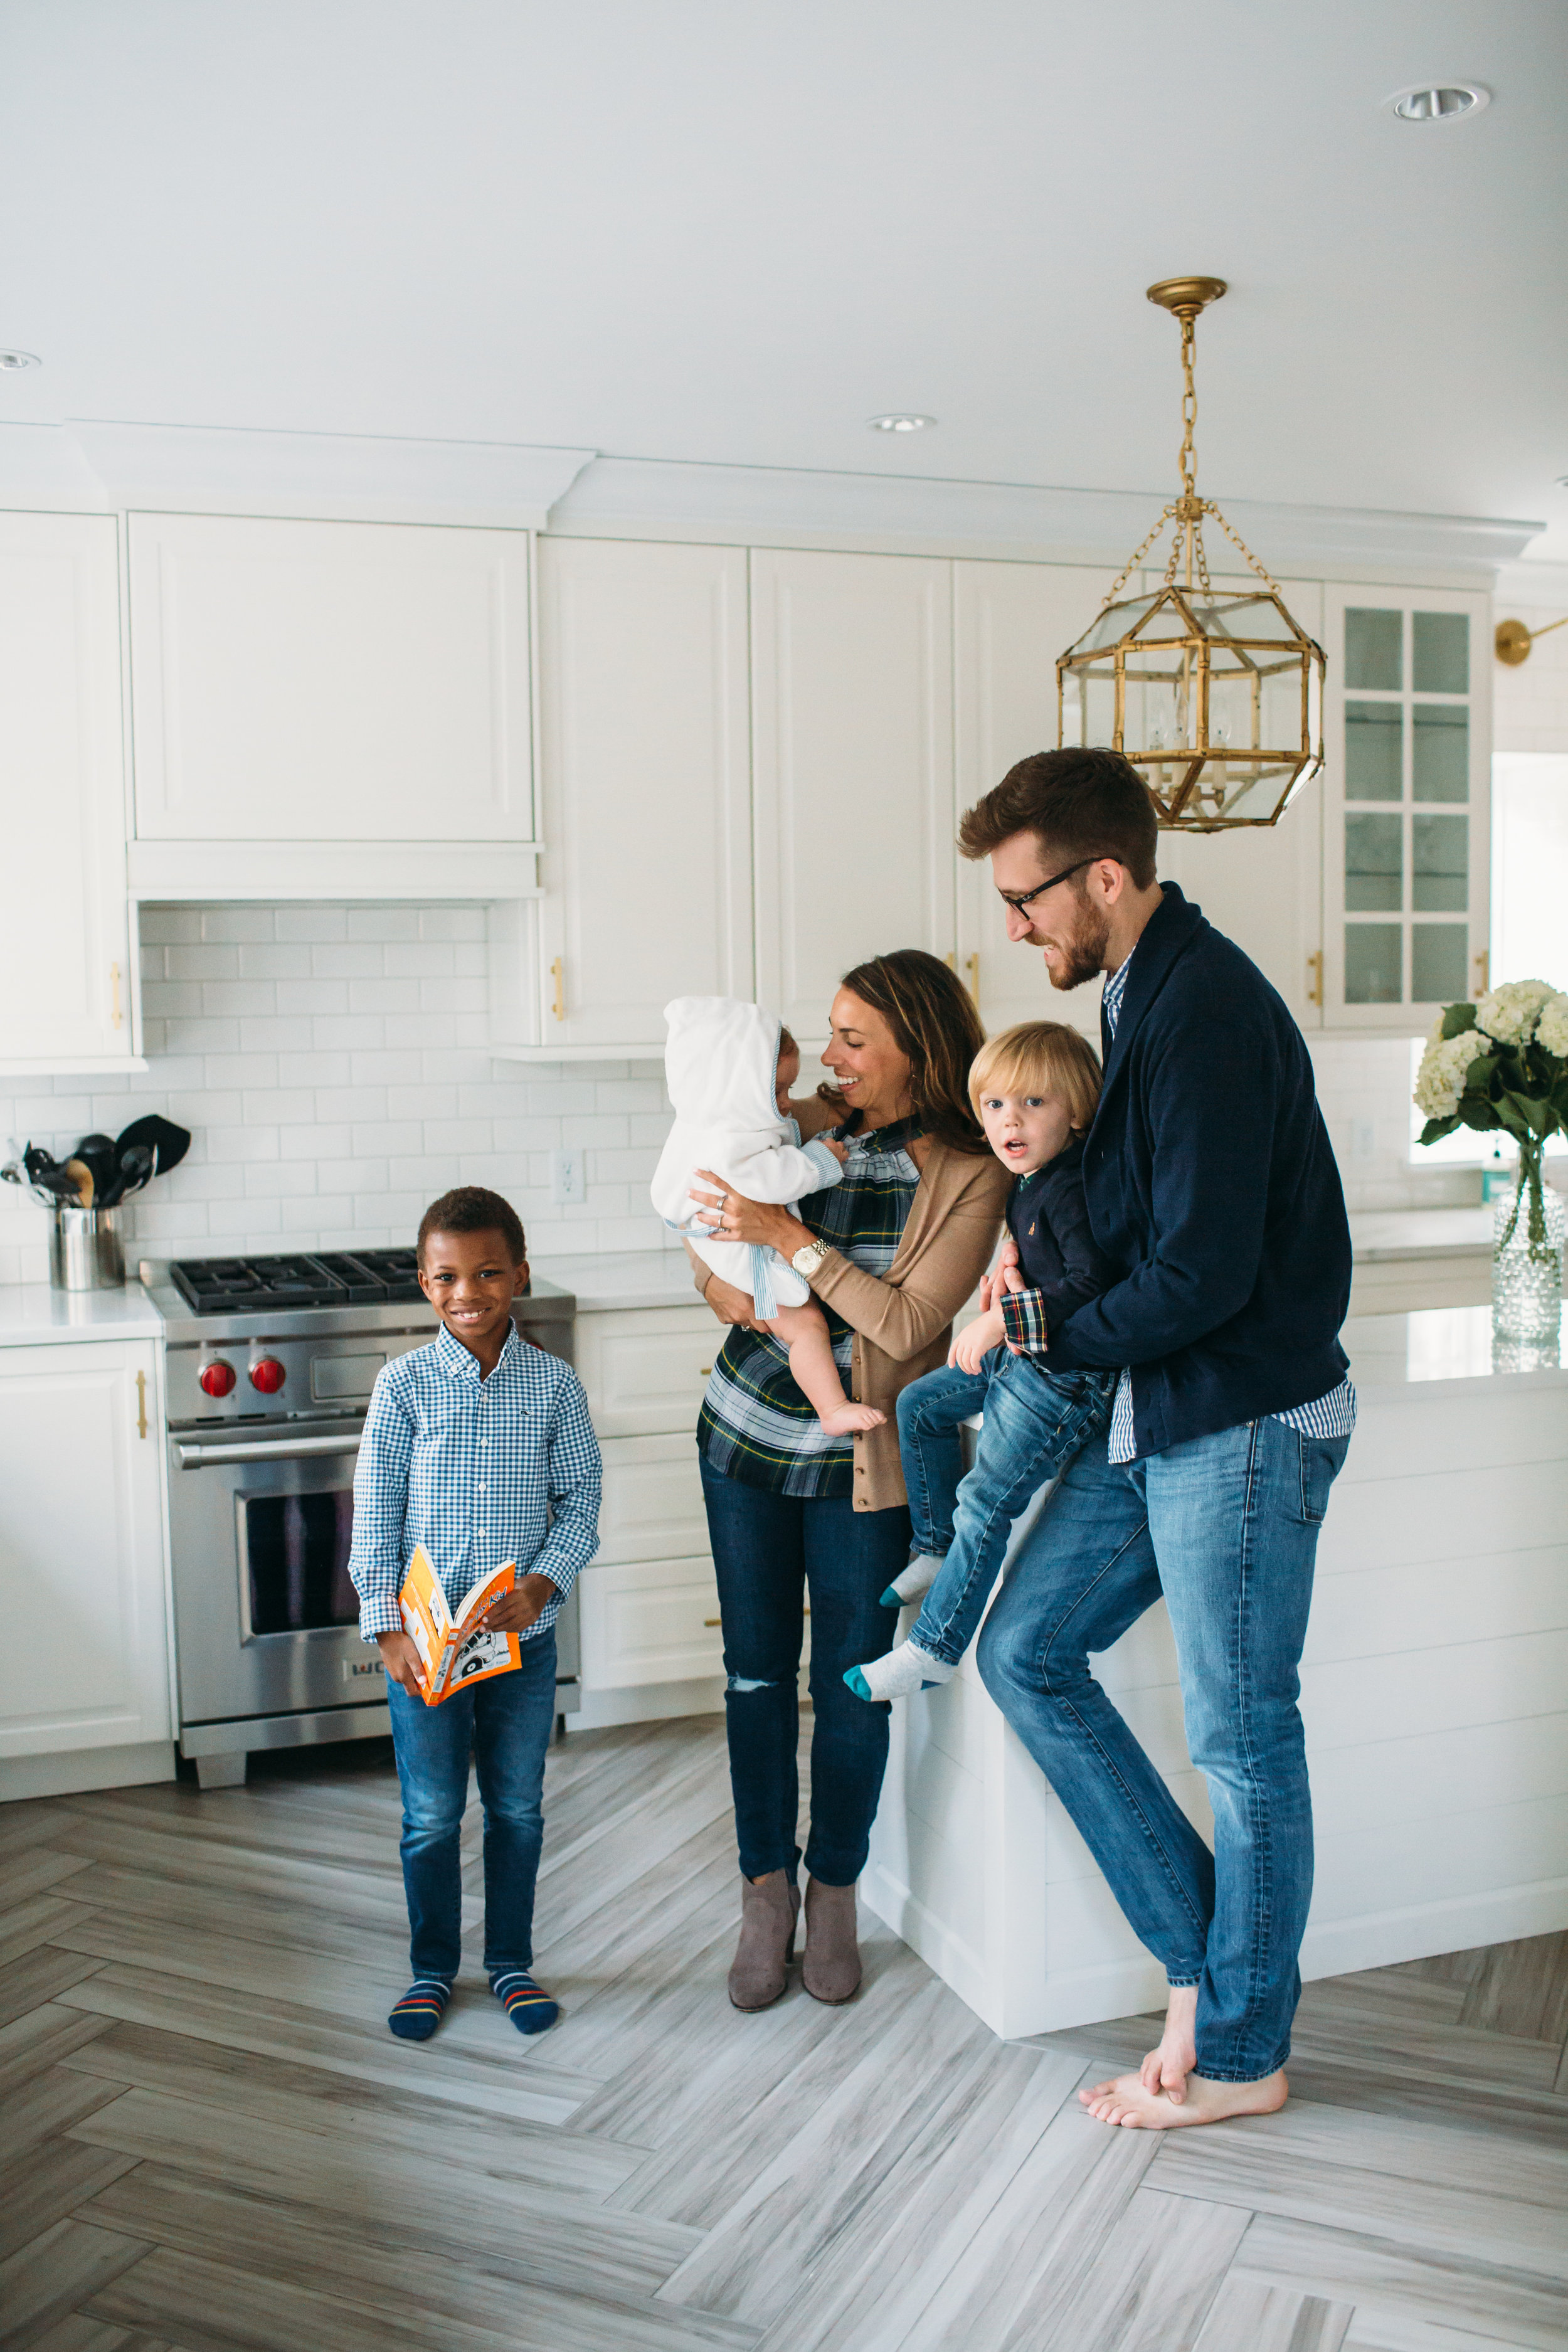 St louis family photos, Lifestyle photographer, Kitchen remodel